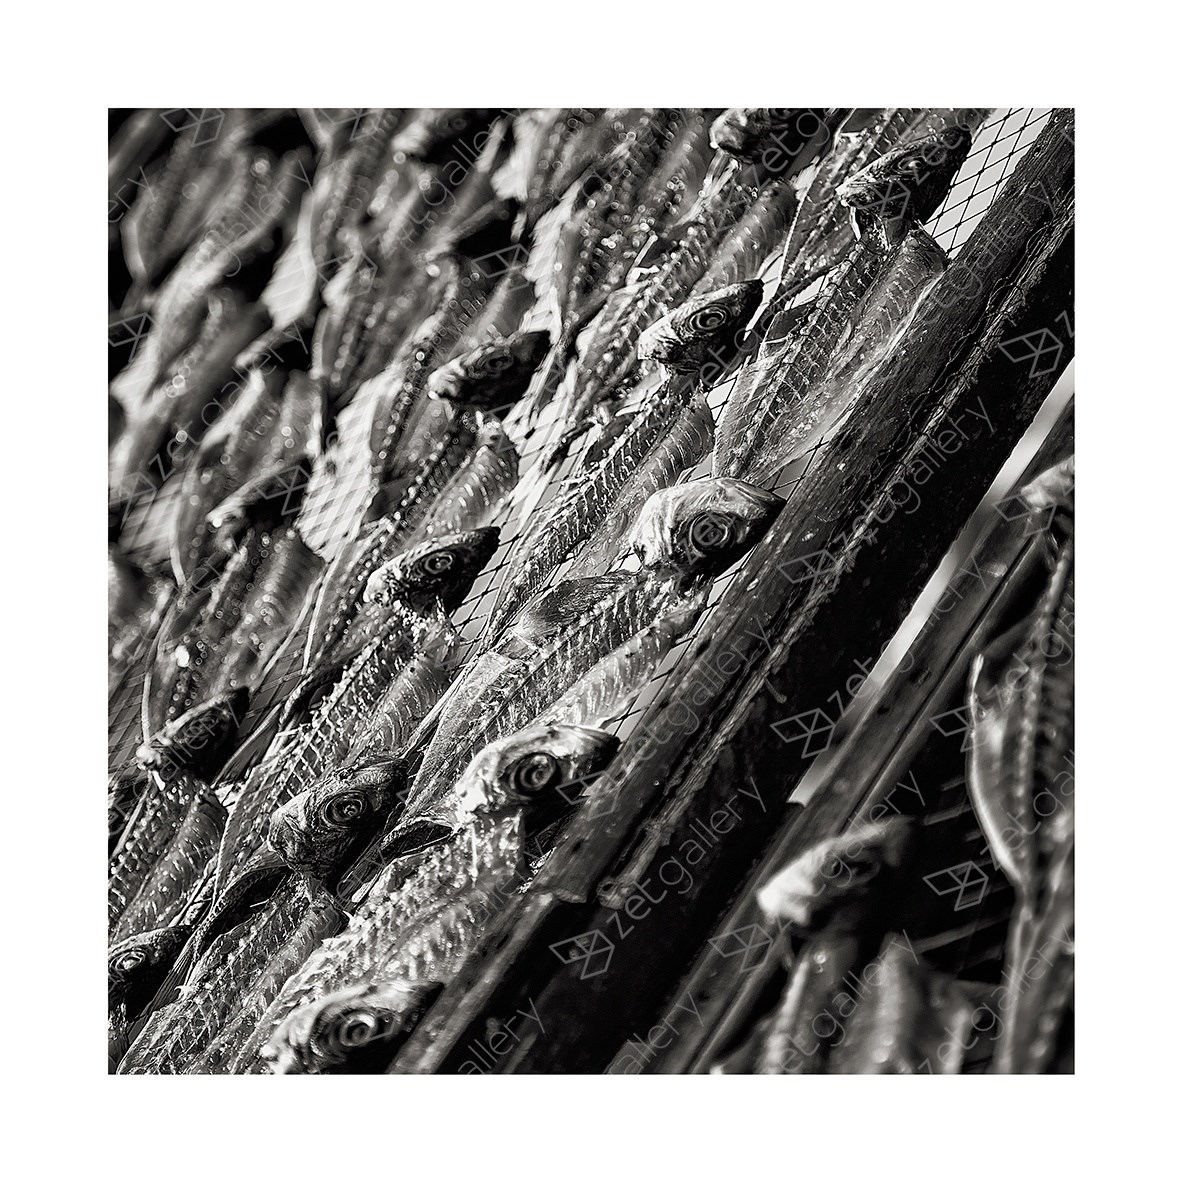 DRY FISH, original B&W Digital Photography by Jorge Viegas